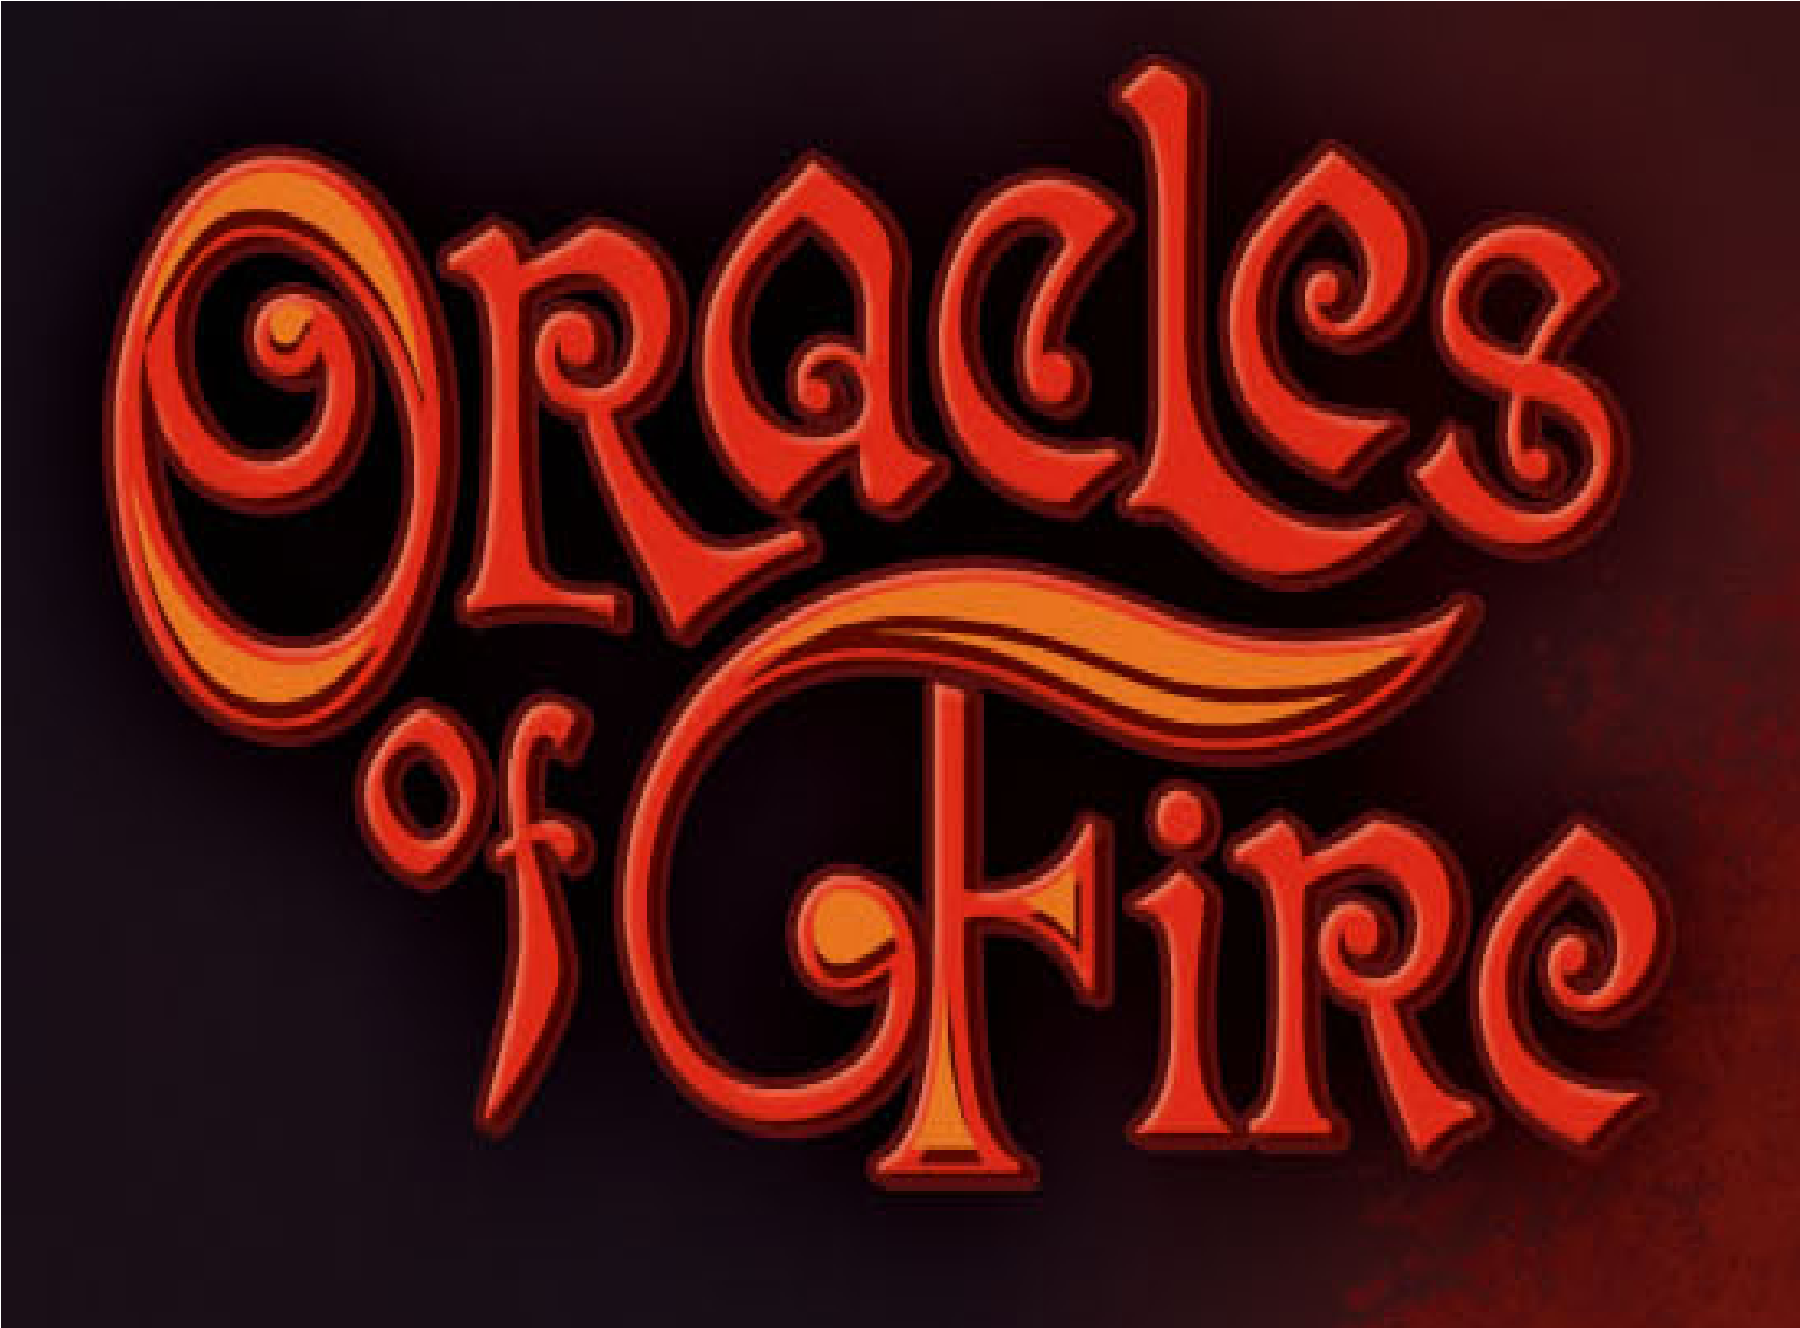 Oracles Fire Oracles of Fire is a Series of